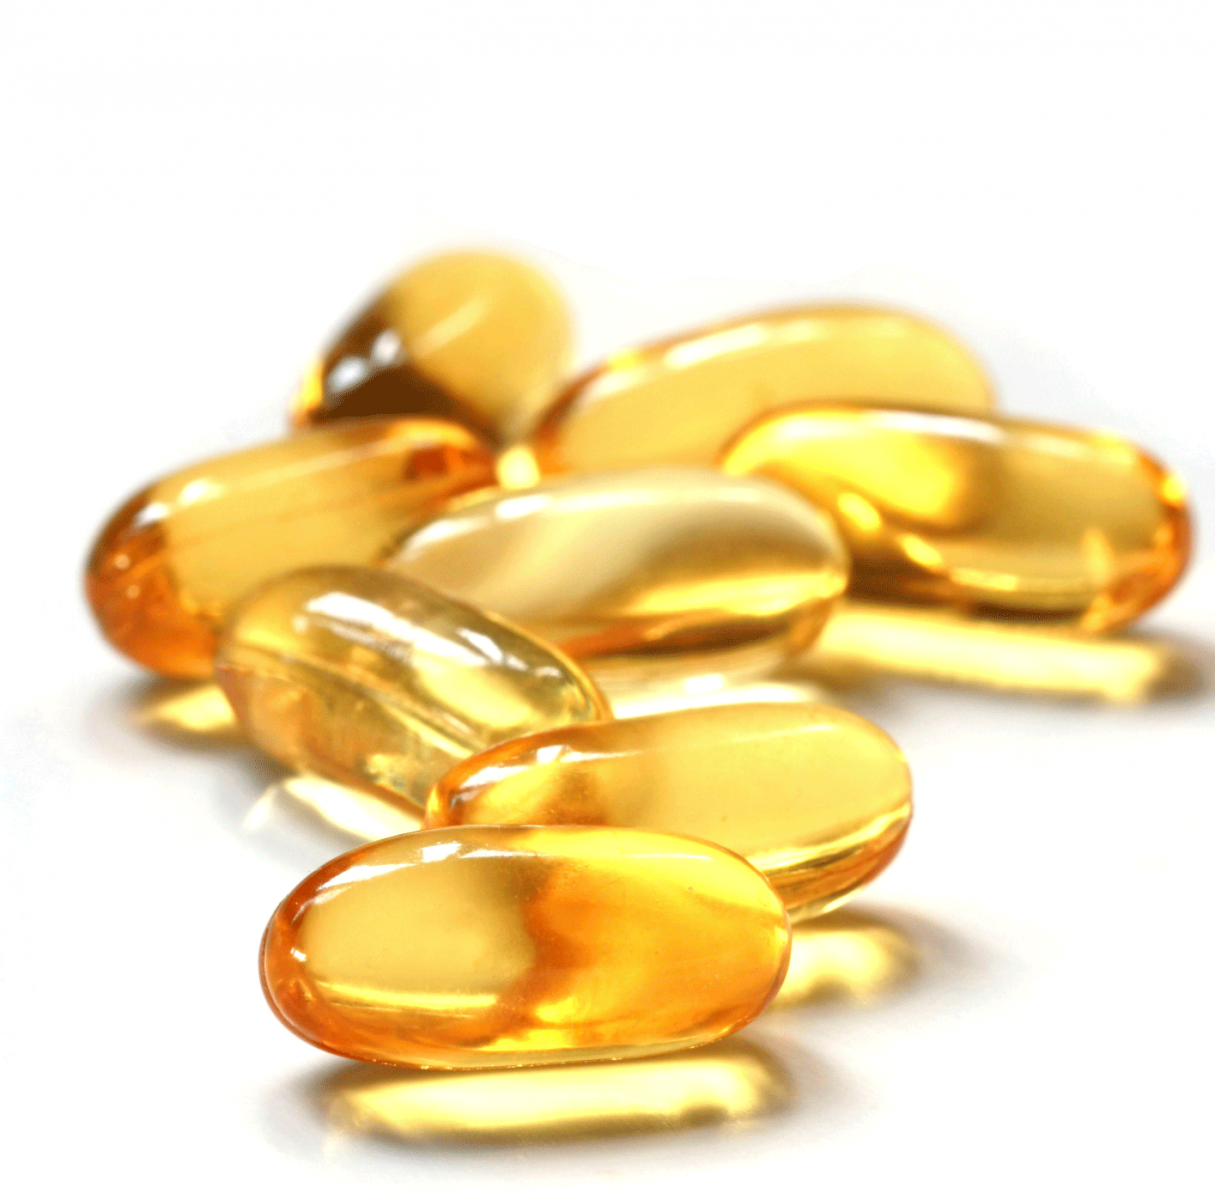 SUPPLEMENTS FOR ORAL HEALTH AND CAVITY